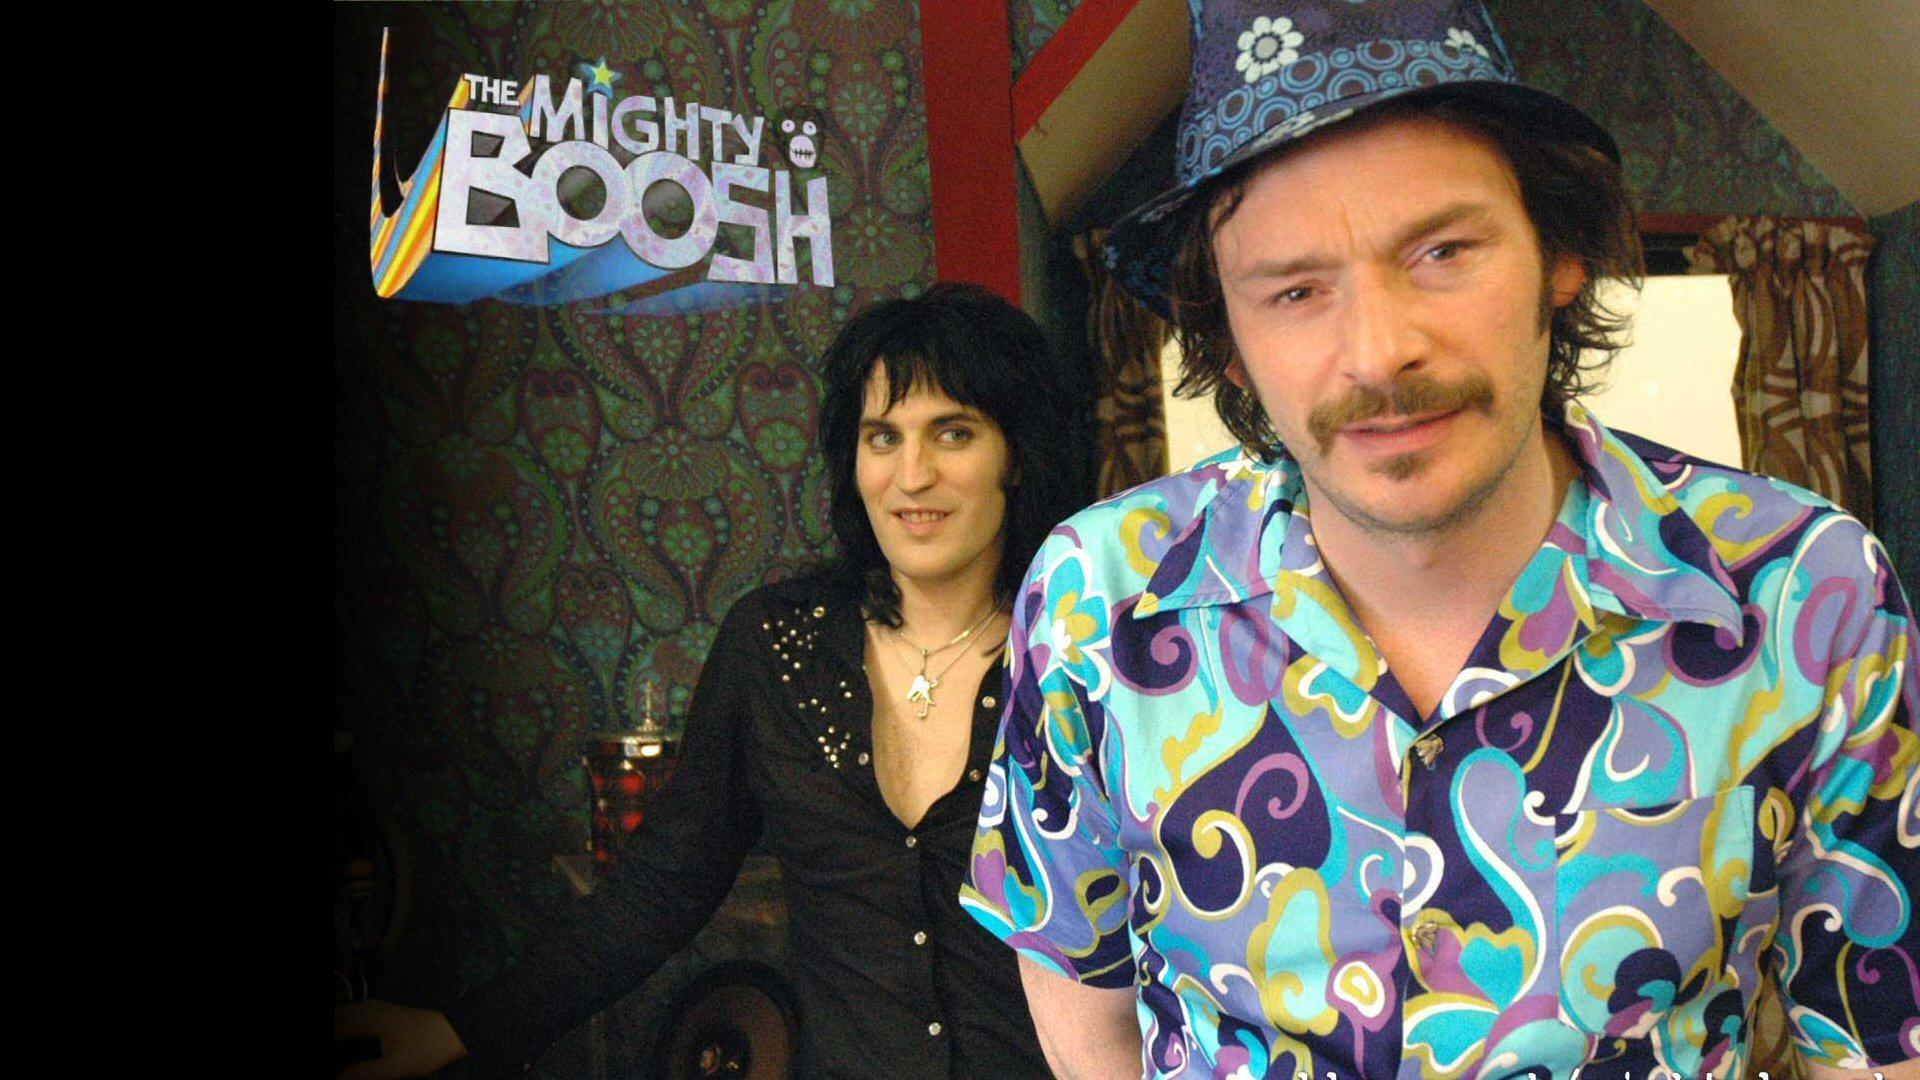 Coby's Blog: mighty boosh wallpaper.